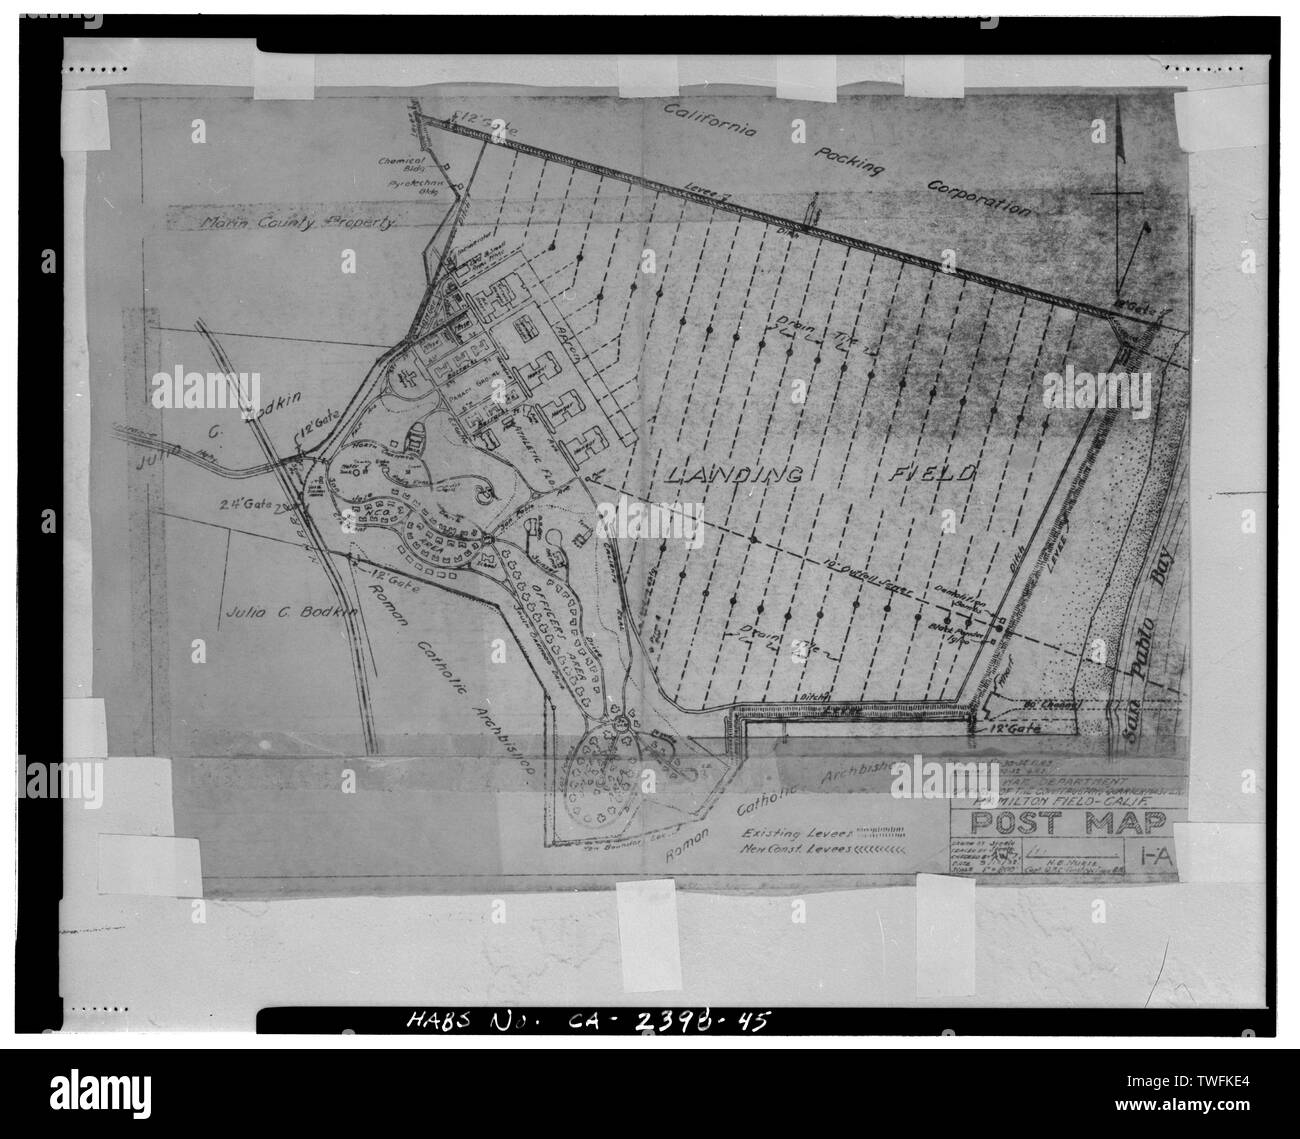 POST MAP. Xerox copy of original sketch map, scale one inch to 800 feet. Sheet 1-A, dated 3-12-32 - Hamilton Field, East of Nave Drive, Novato, Marin County, CA - Stock Image